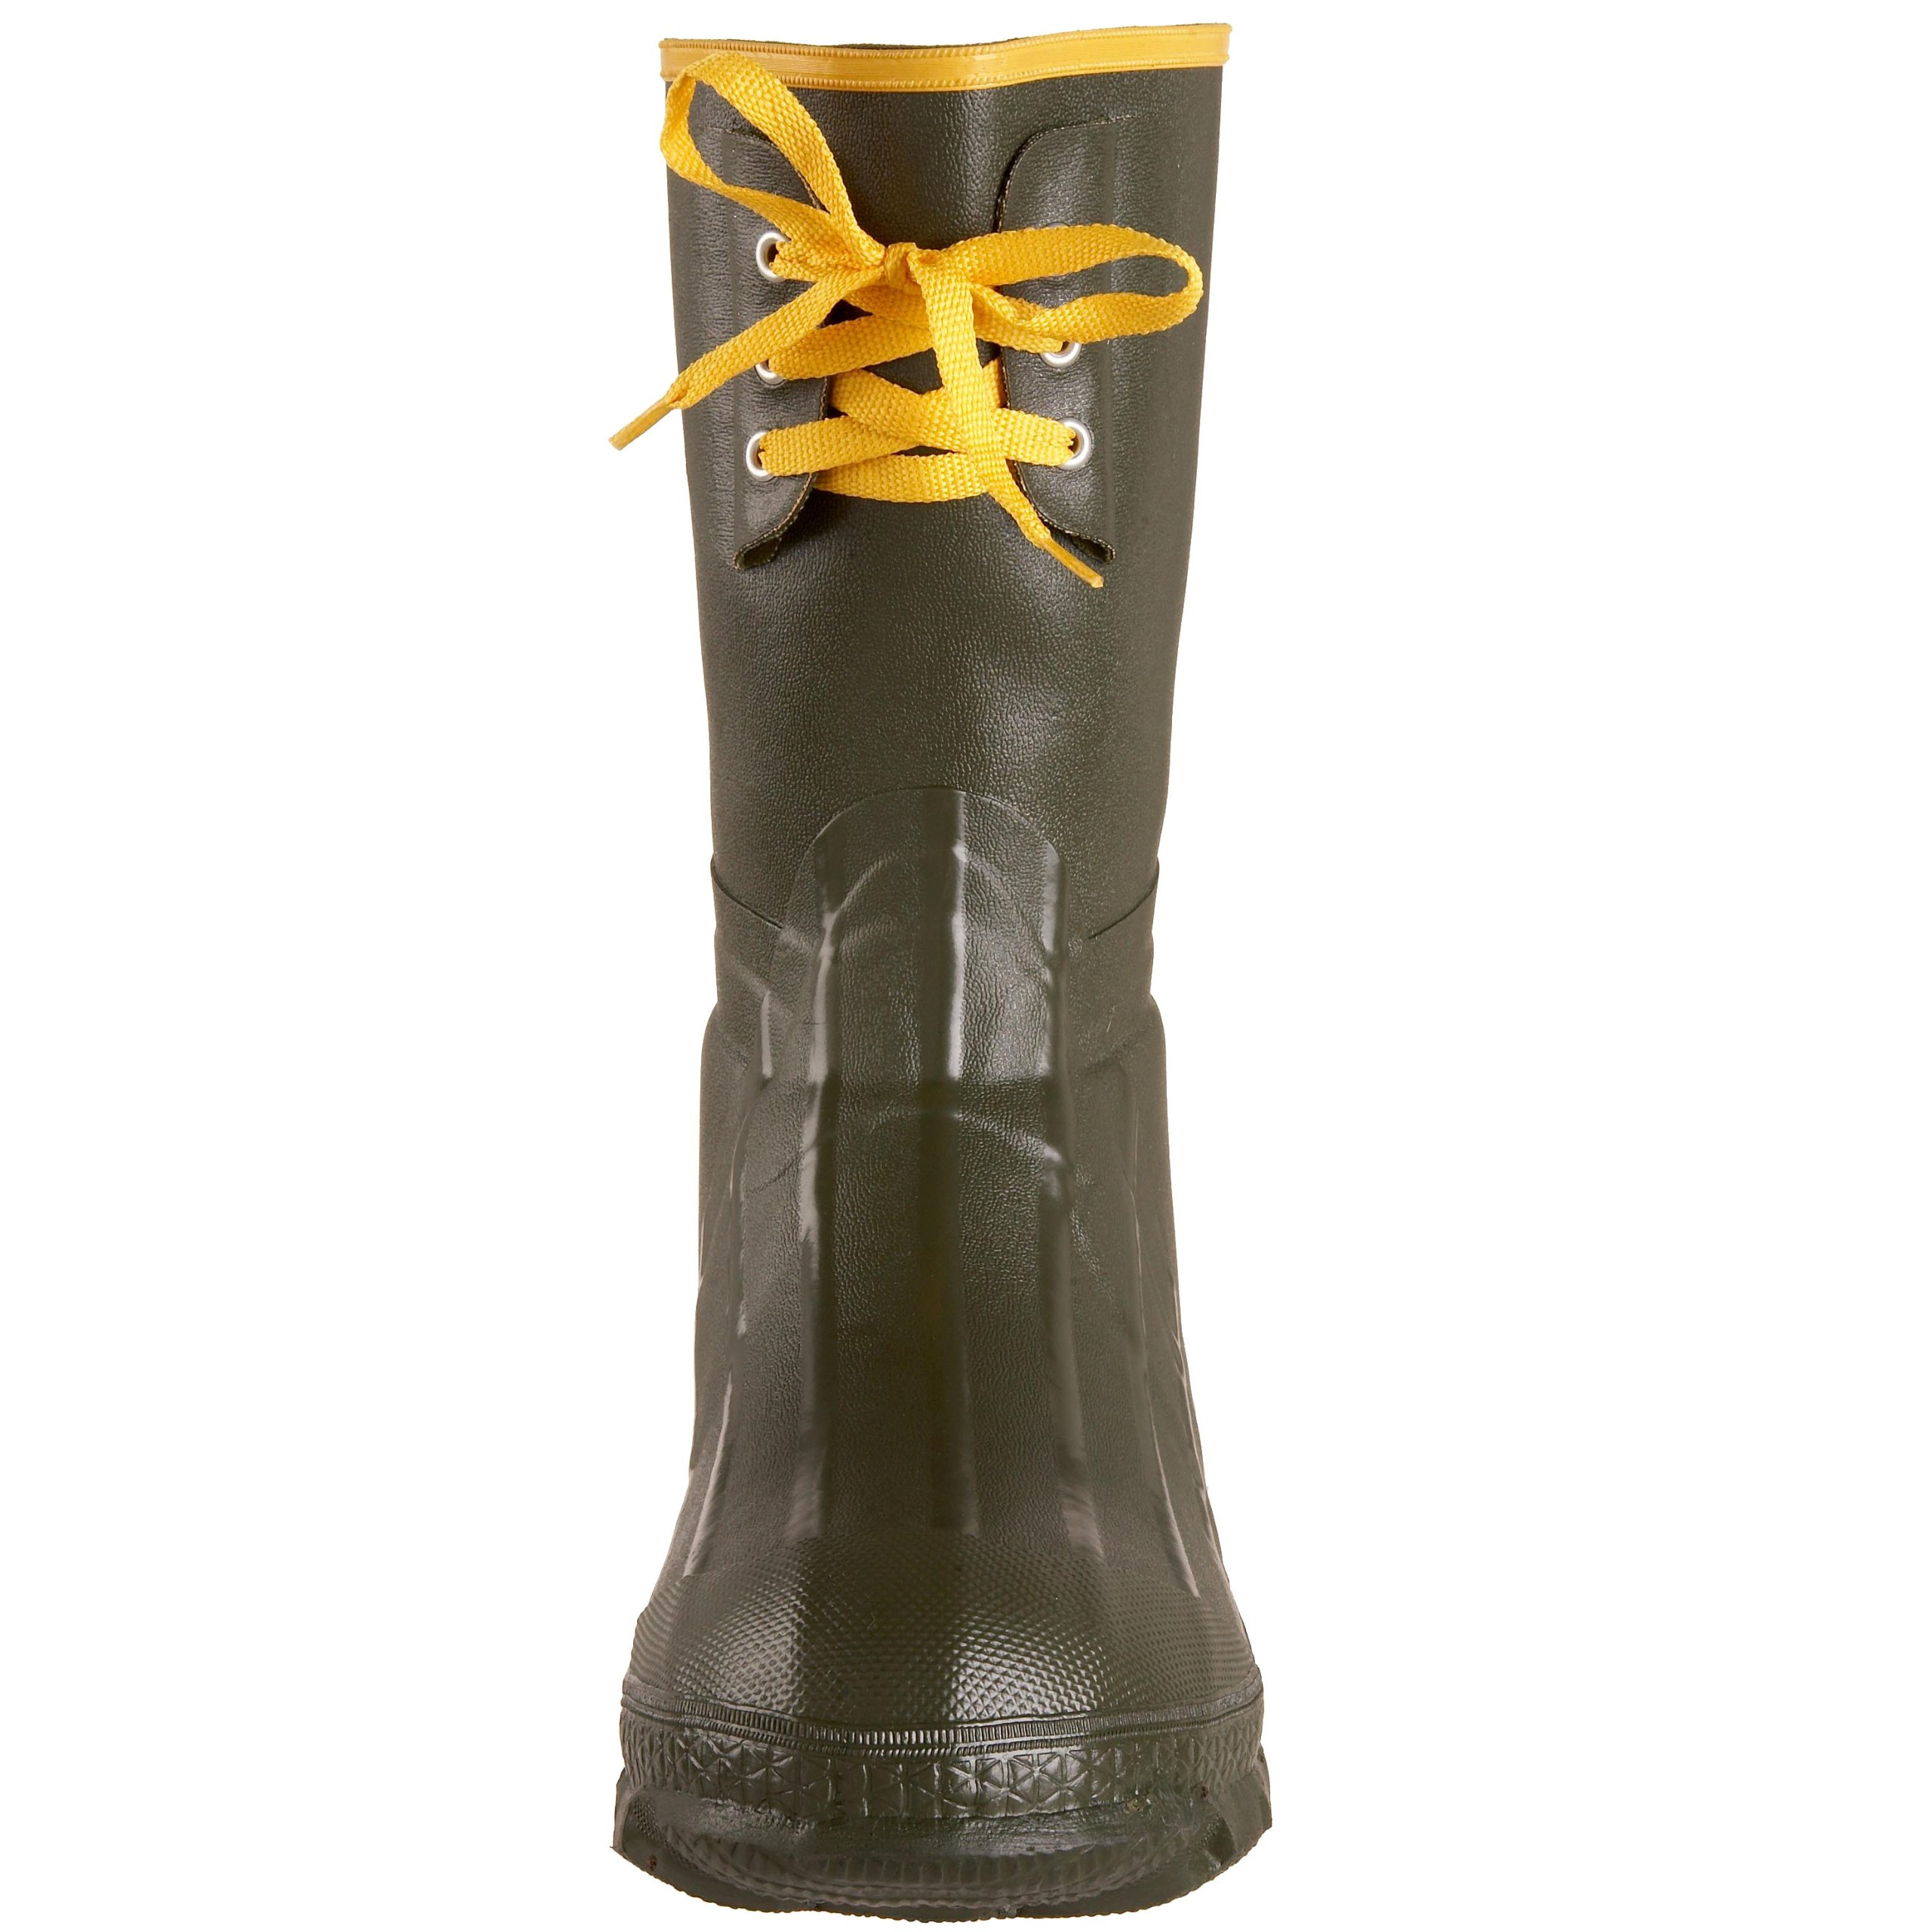 LaCrosse Men's 12'' Insulated Pac Mid-Calf Boot,Olive Drab Green,9 M US by Lacrosse (Image #4)